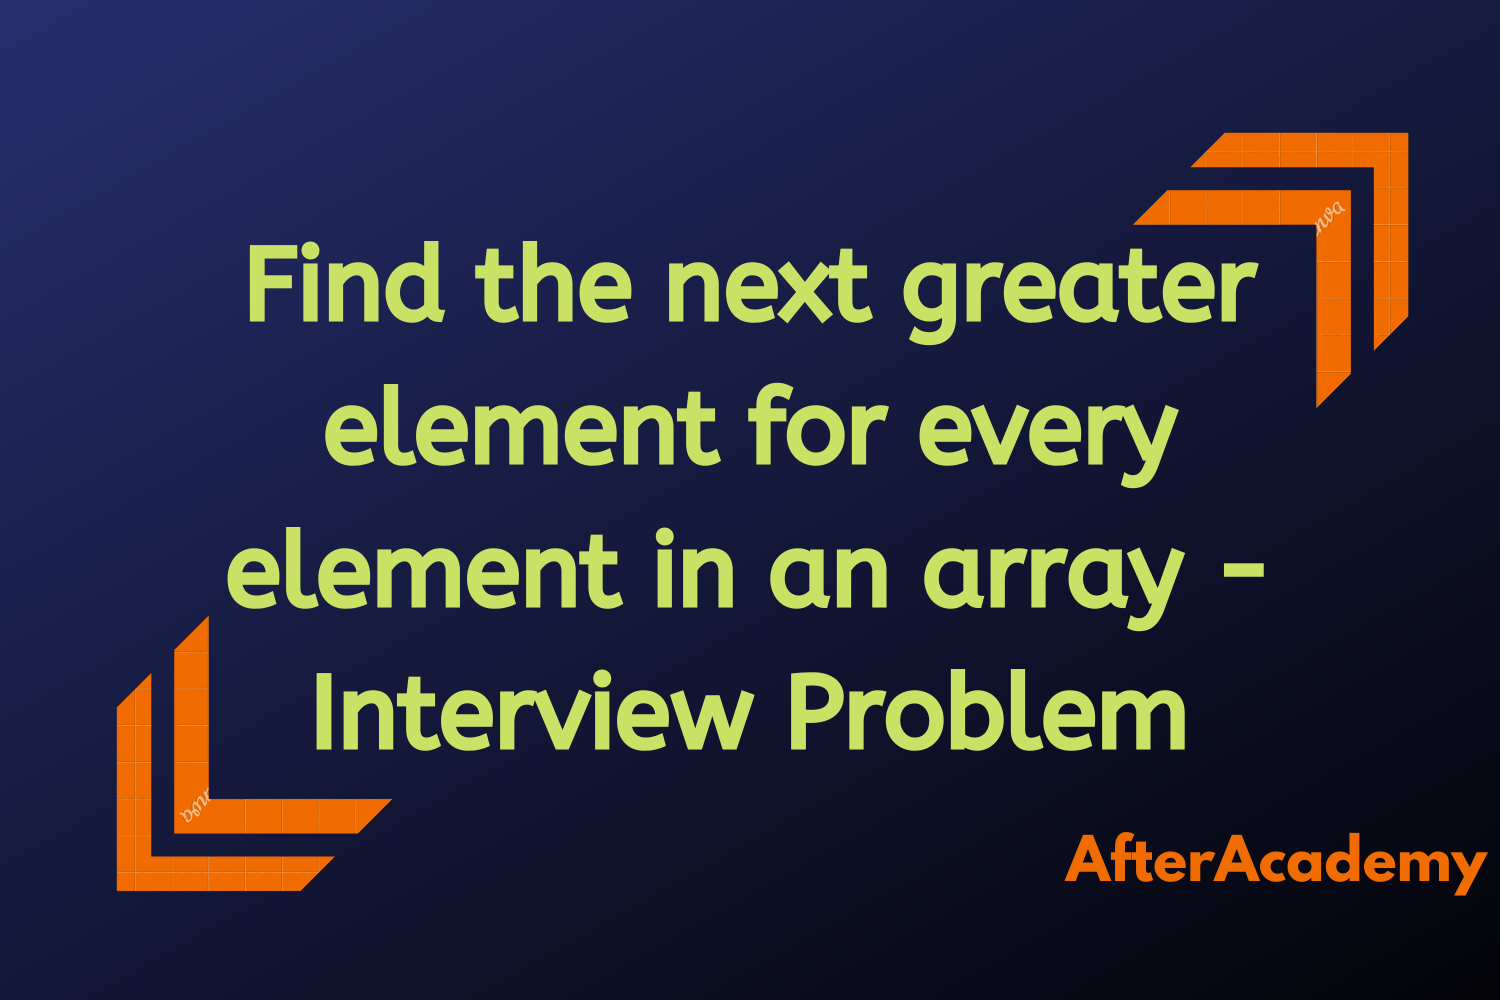 Find the next greater element for every element in an array - Interview Problem